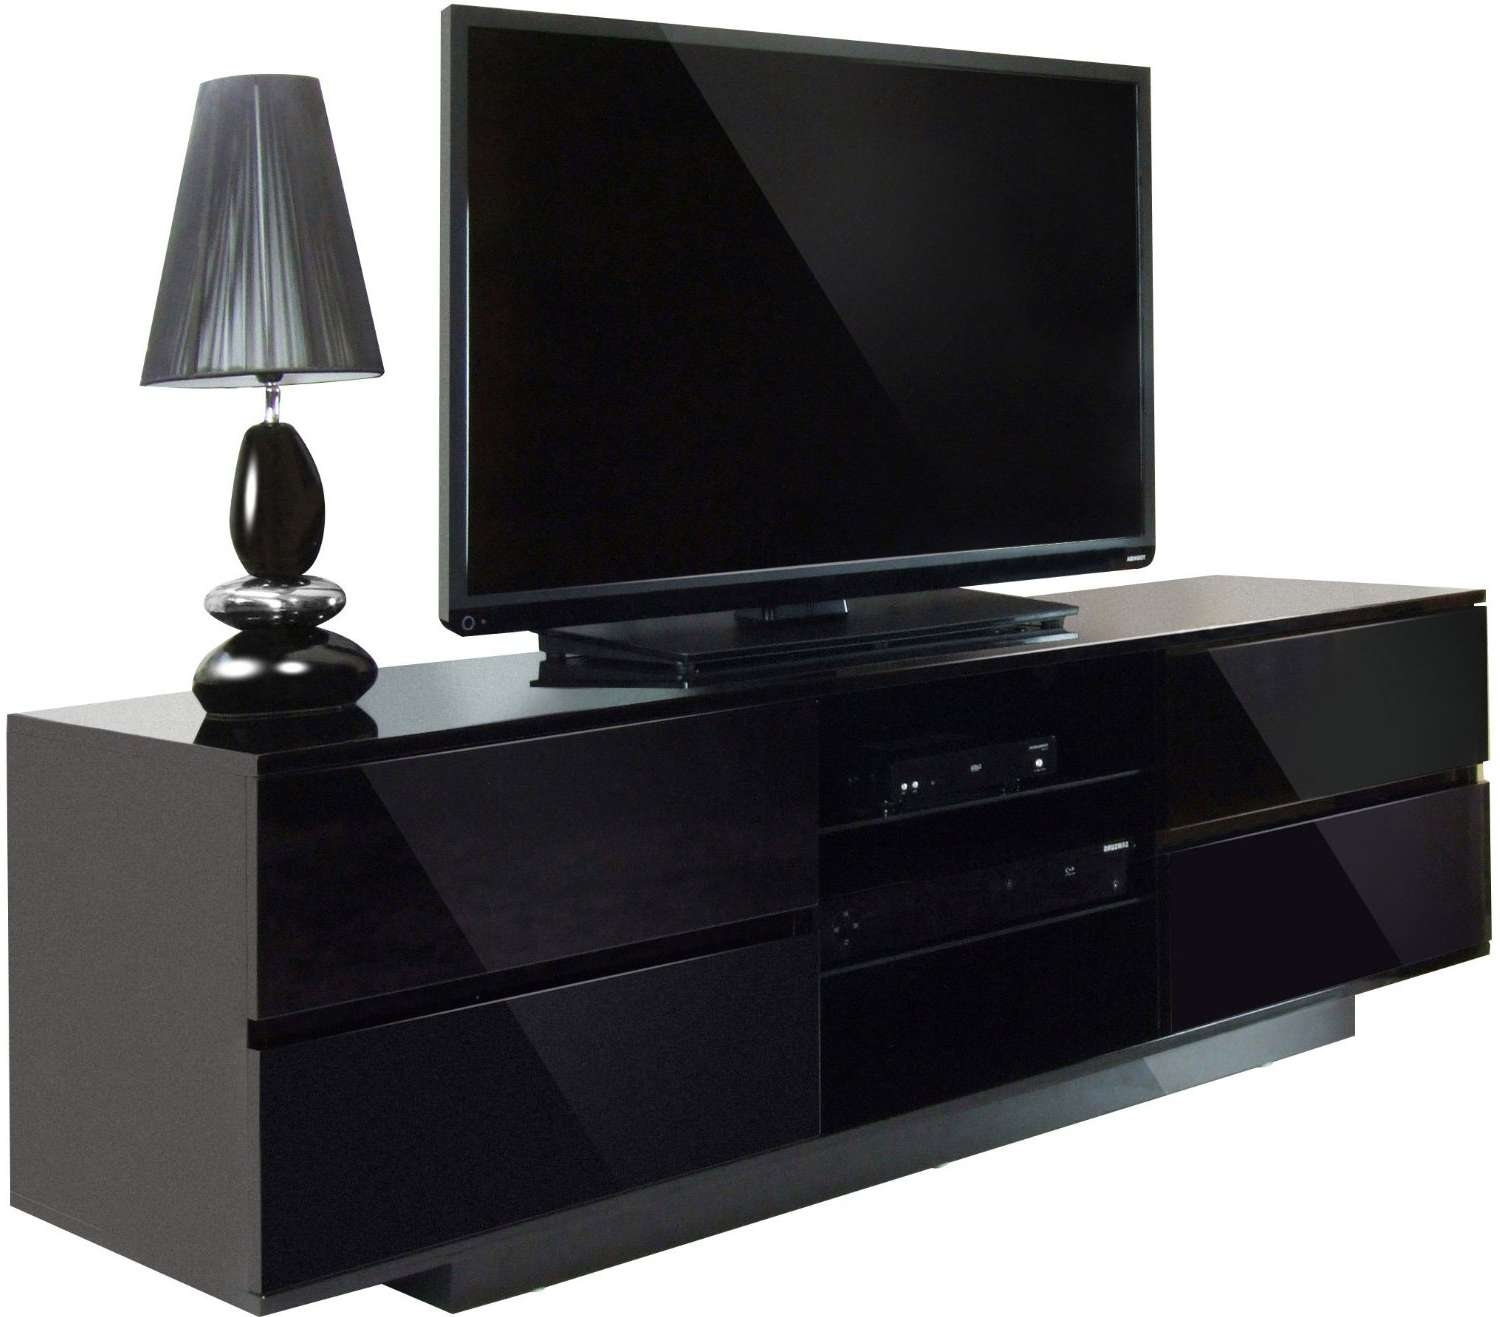 Black Led Tv On Rectangle Black Wooden Short Narrow Storage In Black Tv Stands With Drawers (View 2 of 15)